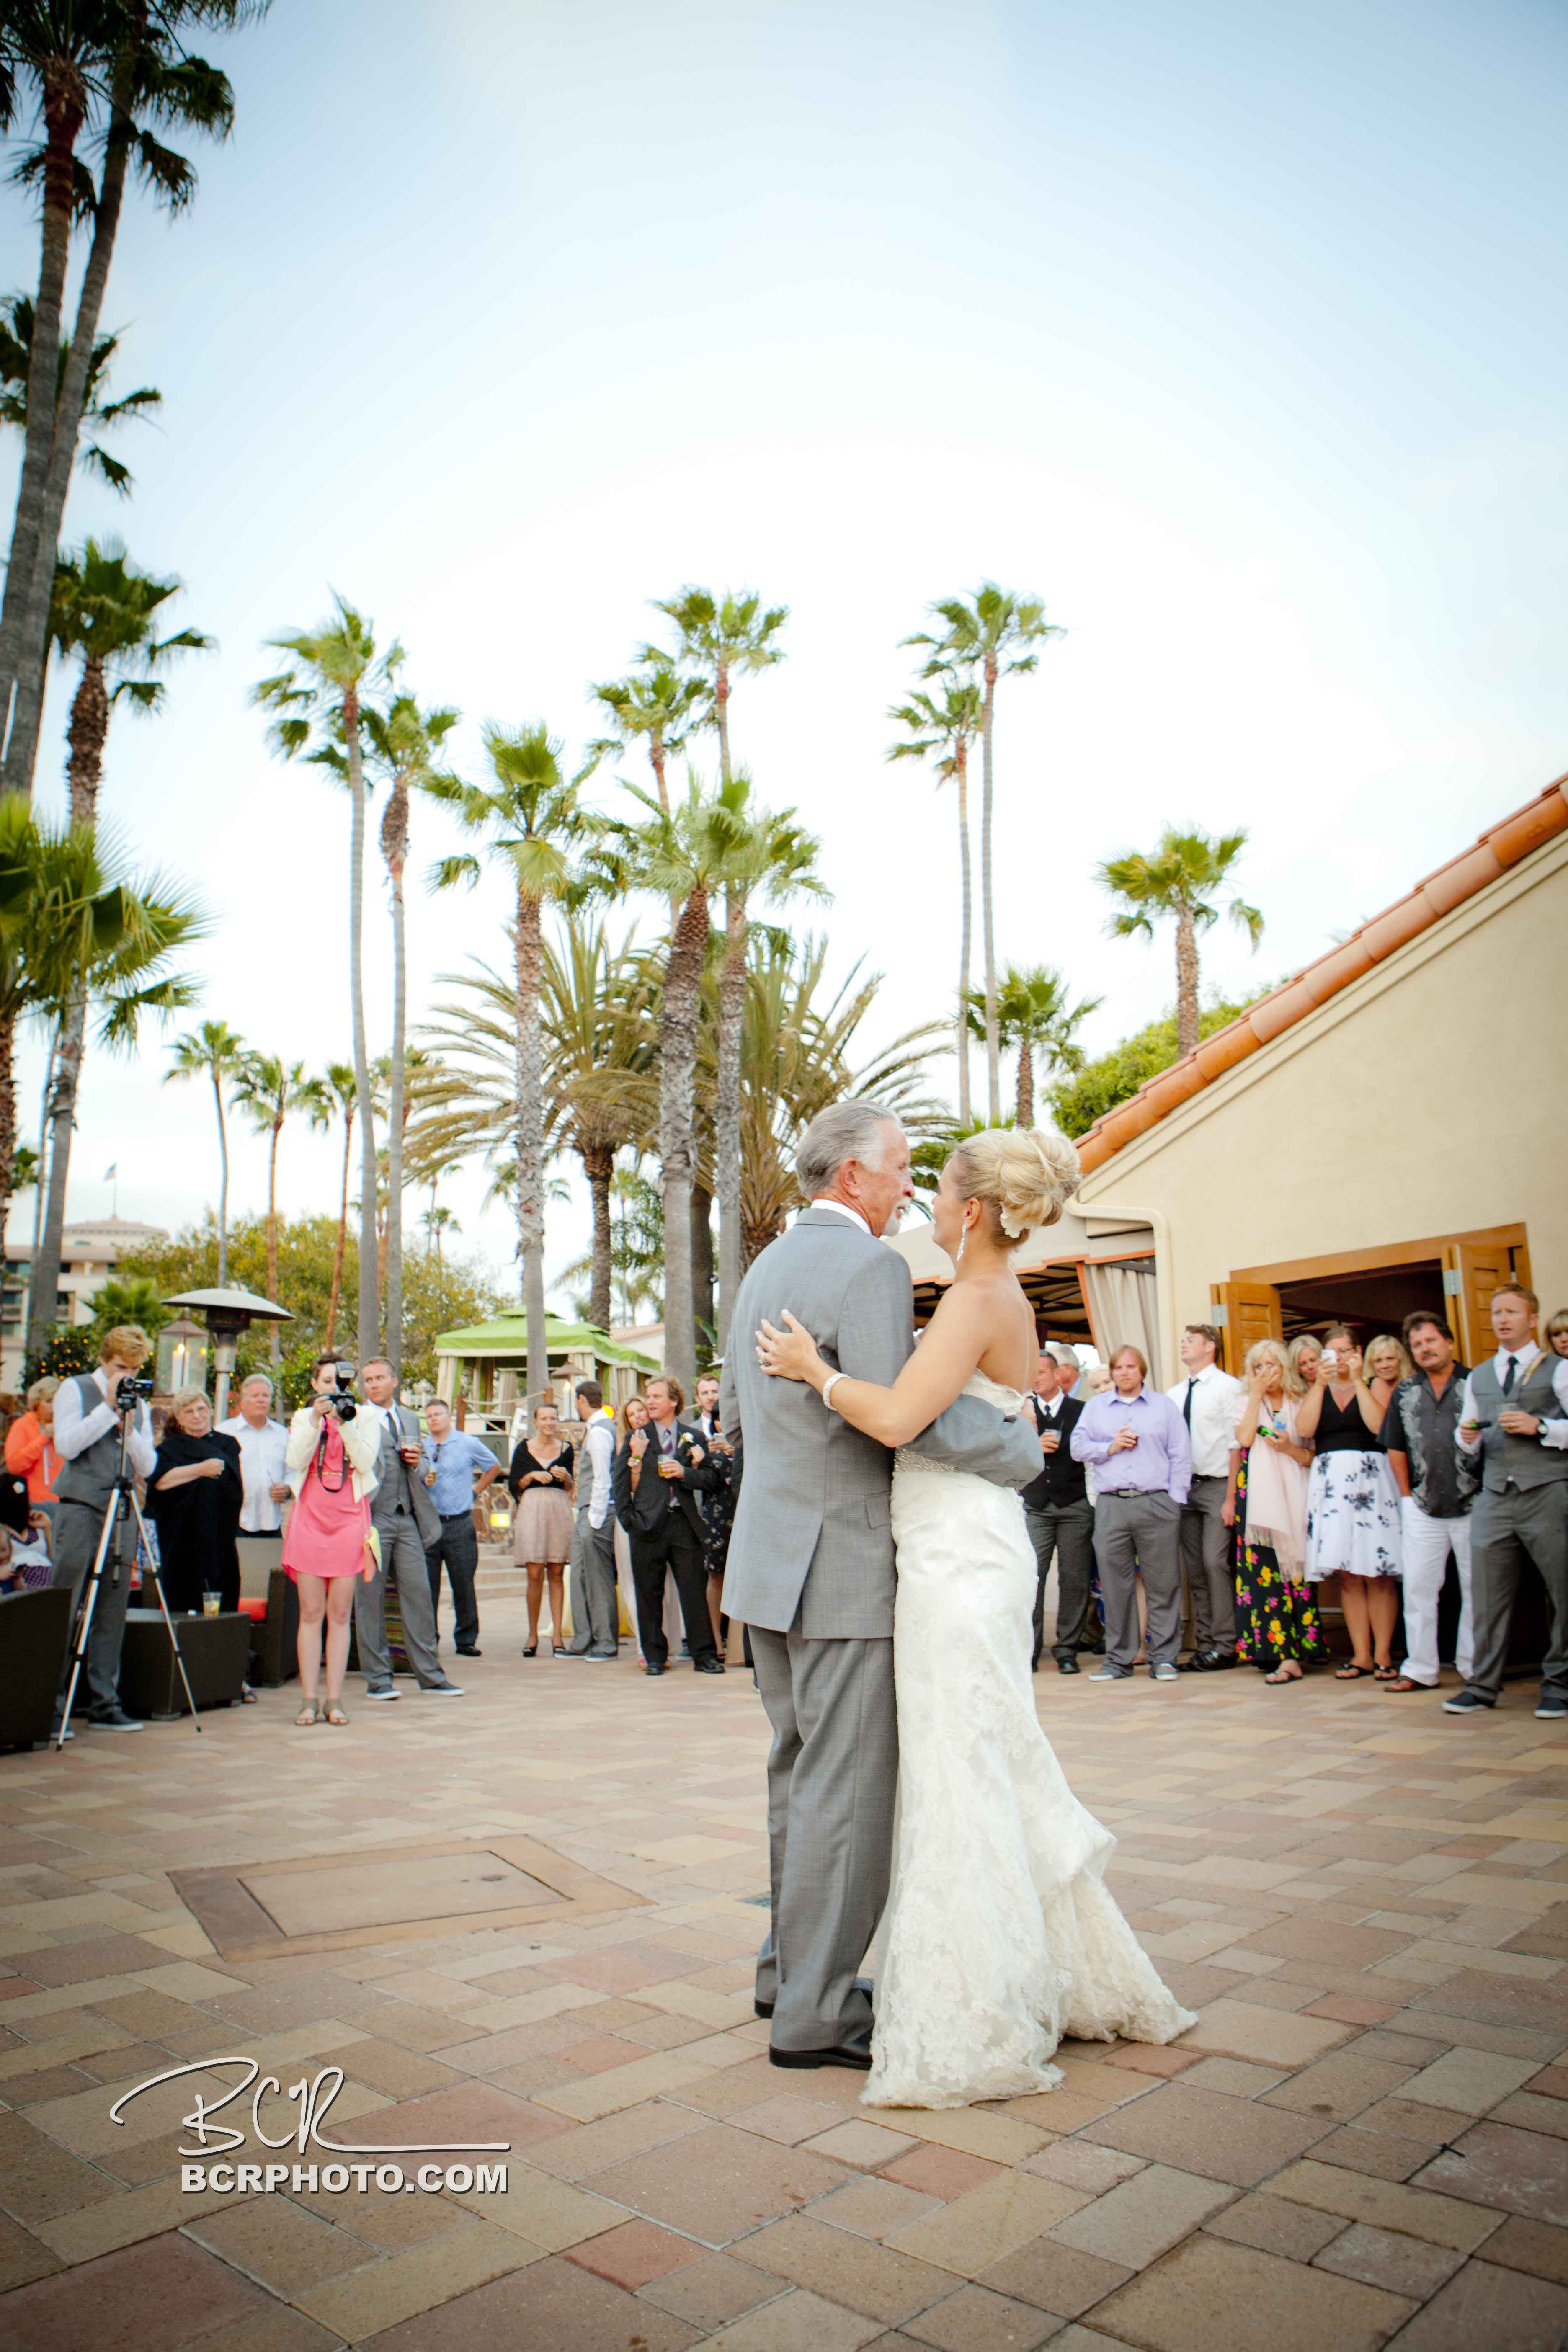 A special father-daughter dance under the palms captured beautifully by Brett Charles Rose Photography #sandiegoweddings